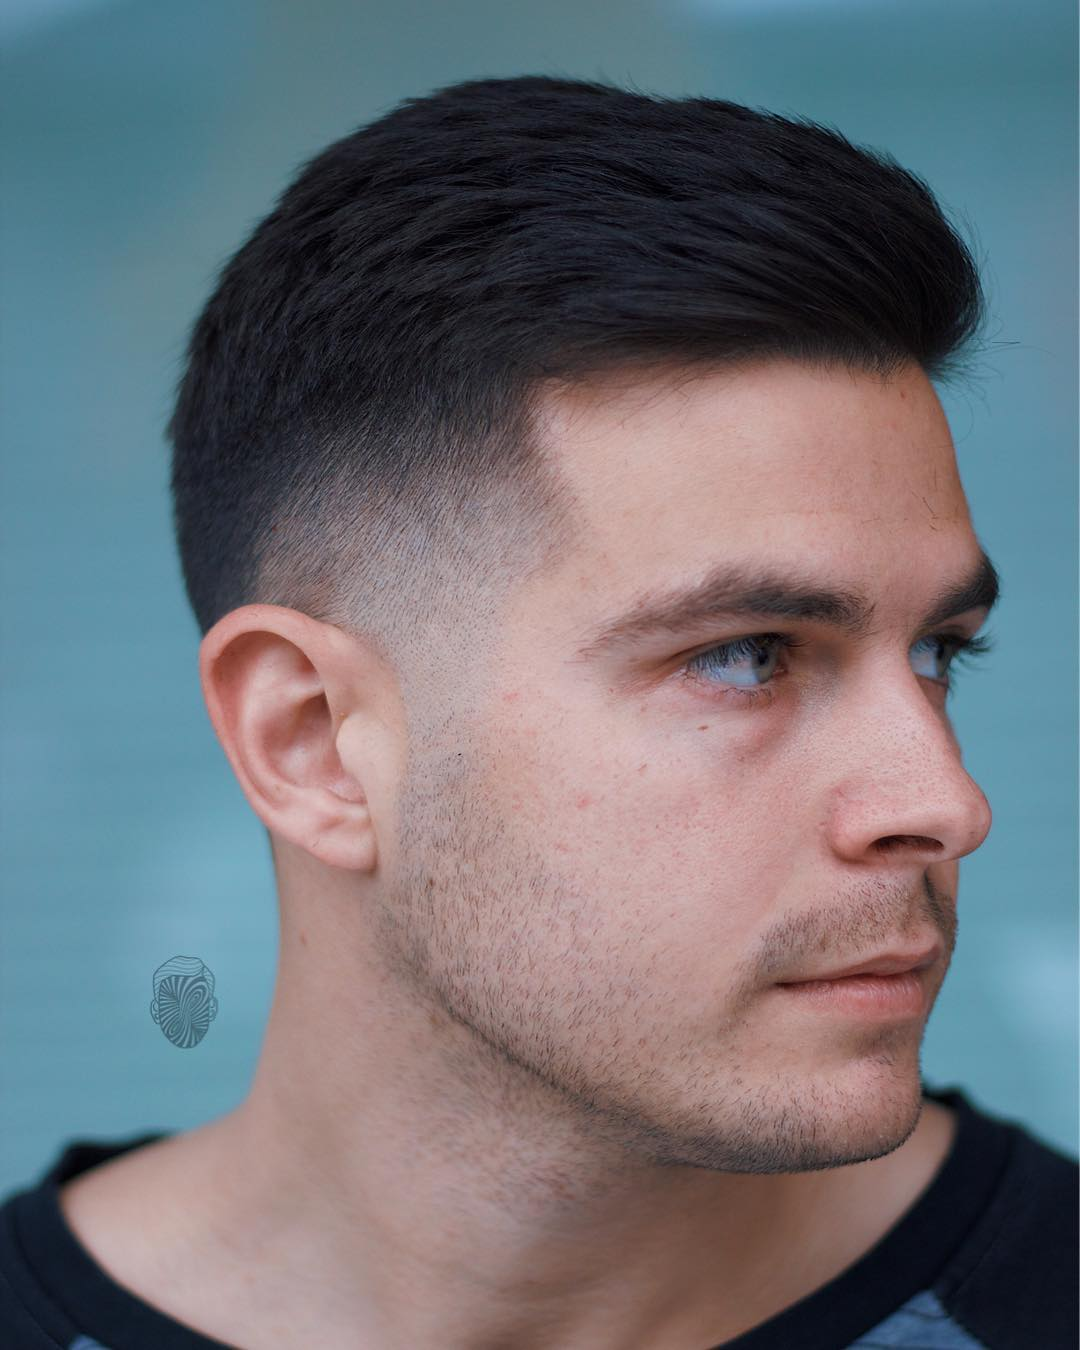 Best New Men's Haircuts & Hairstyles For 2018 (Videos ...